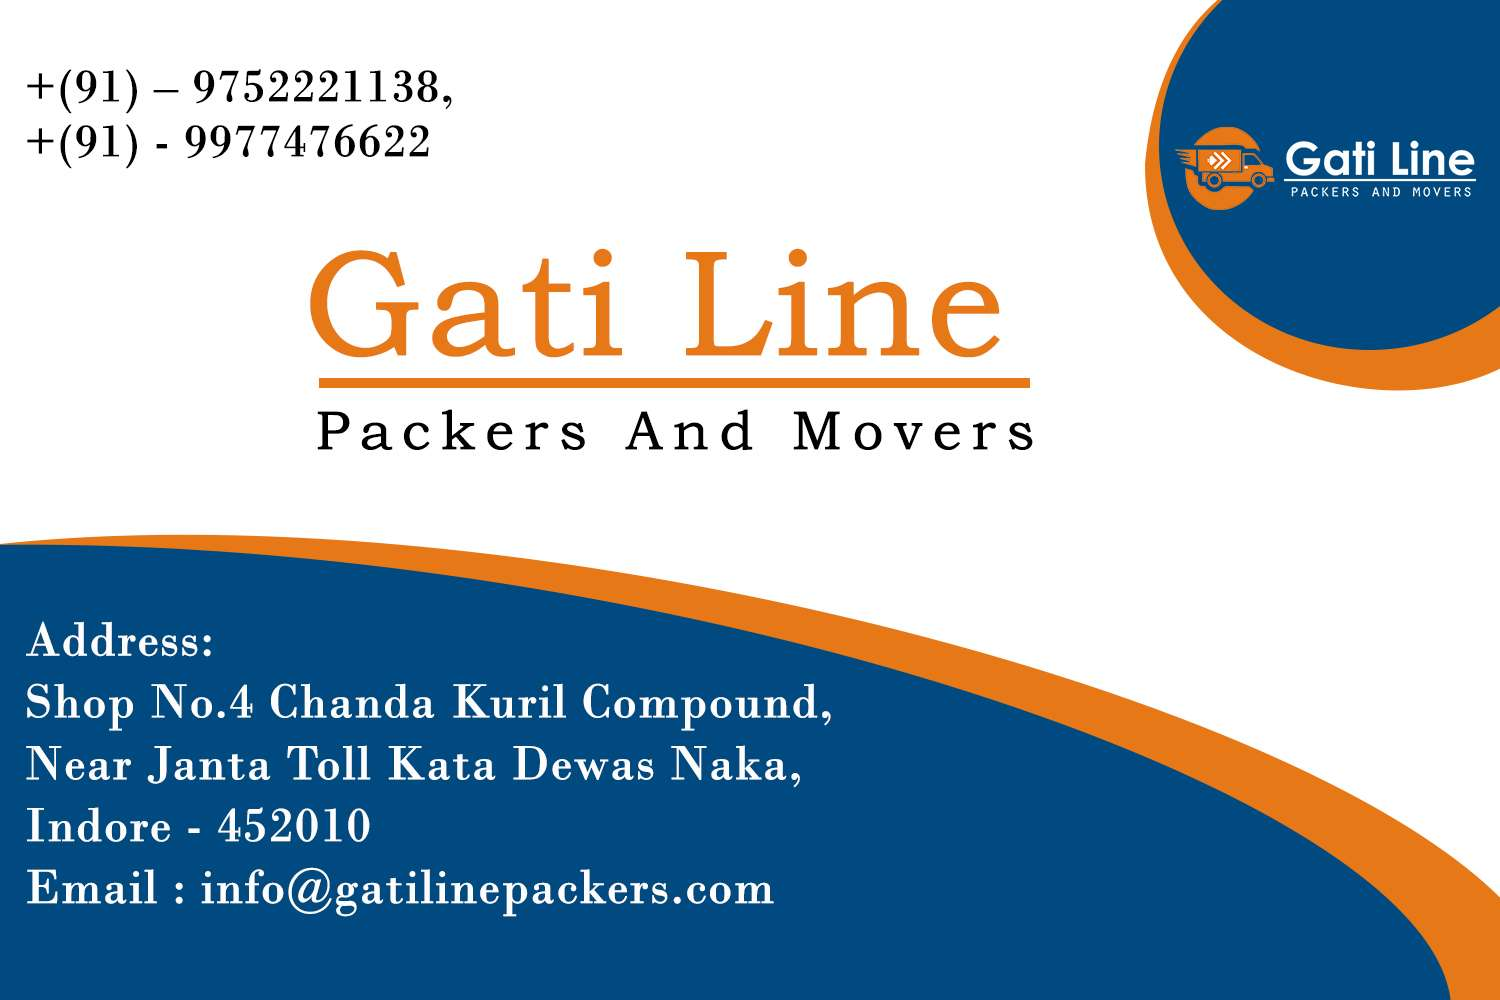 Gati Line Packers And Movers Indore